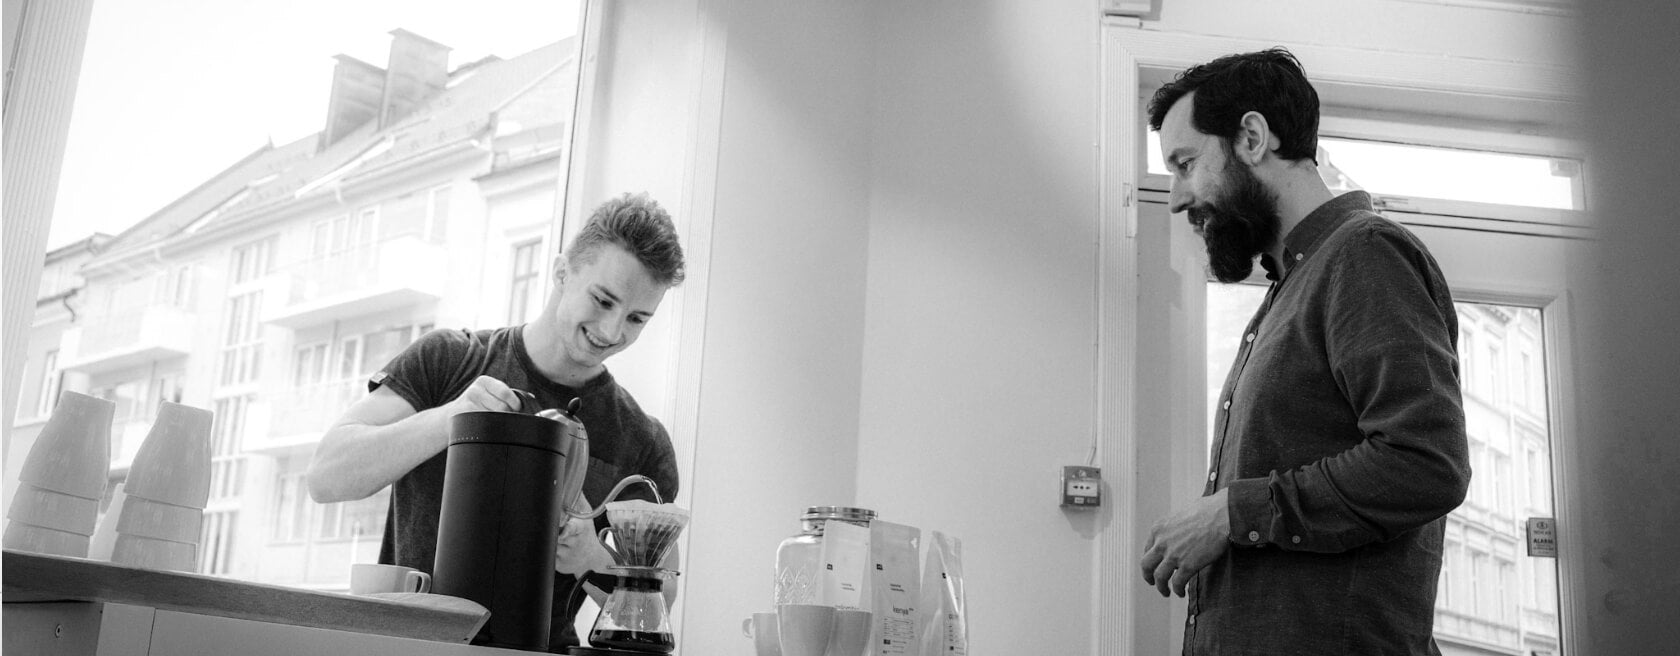 Sander Knutsen brewing V60 coffee at 1o1BARBERS event, CoffeeBeats